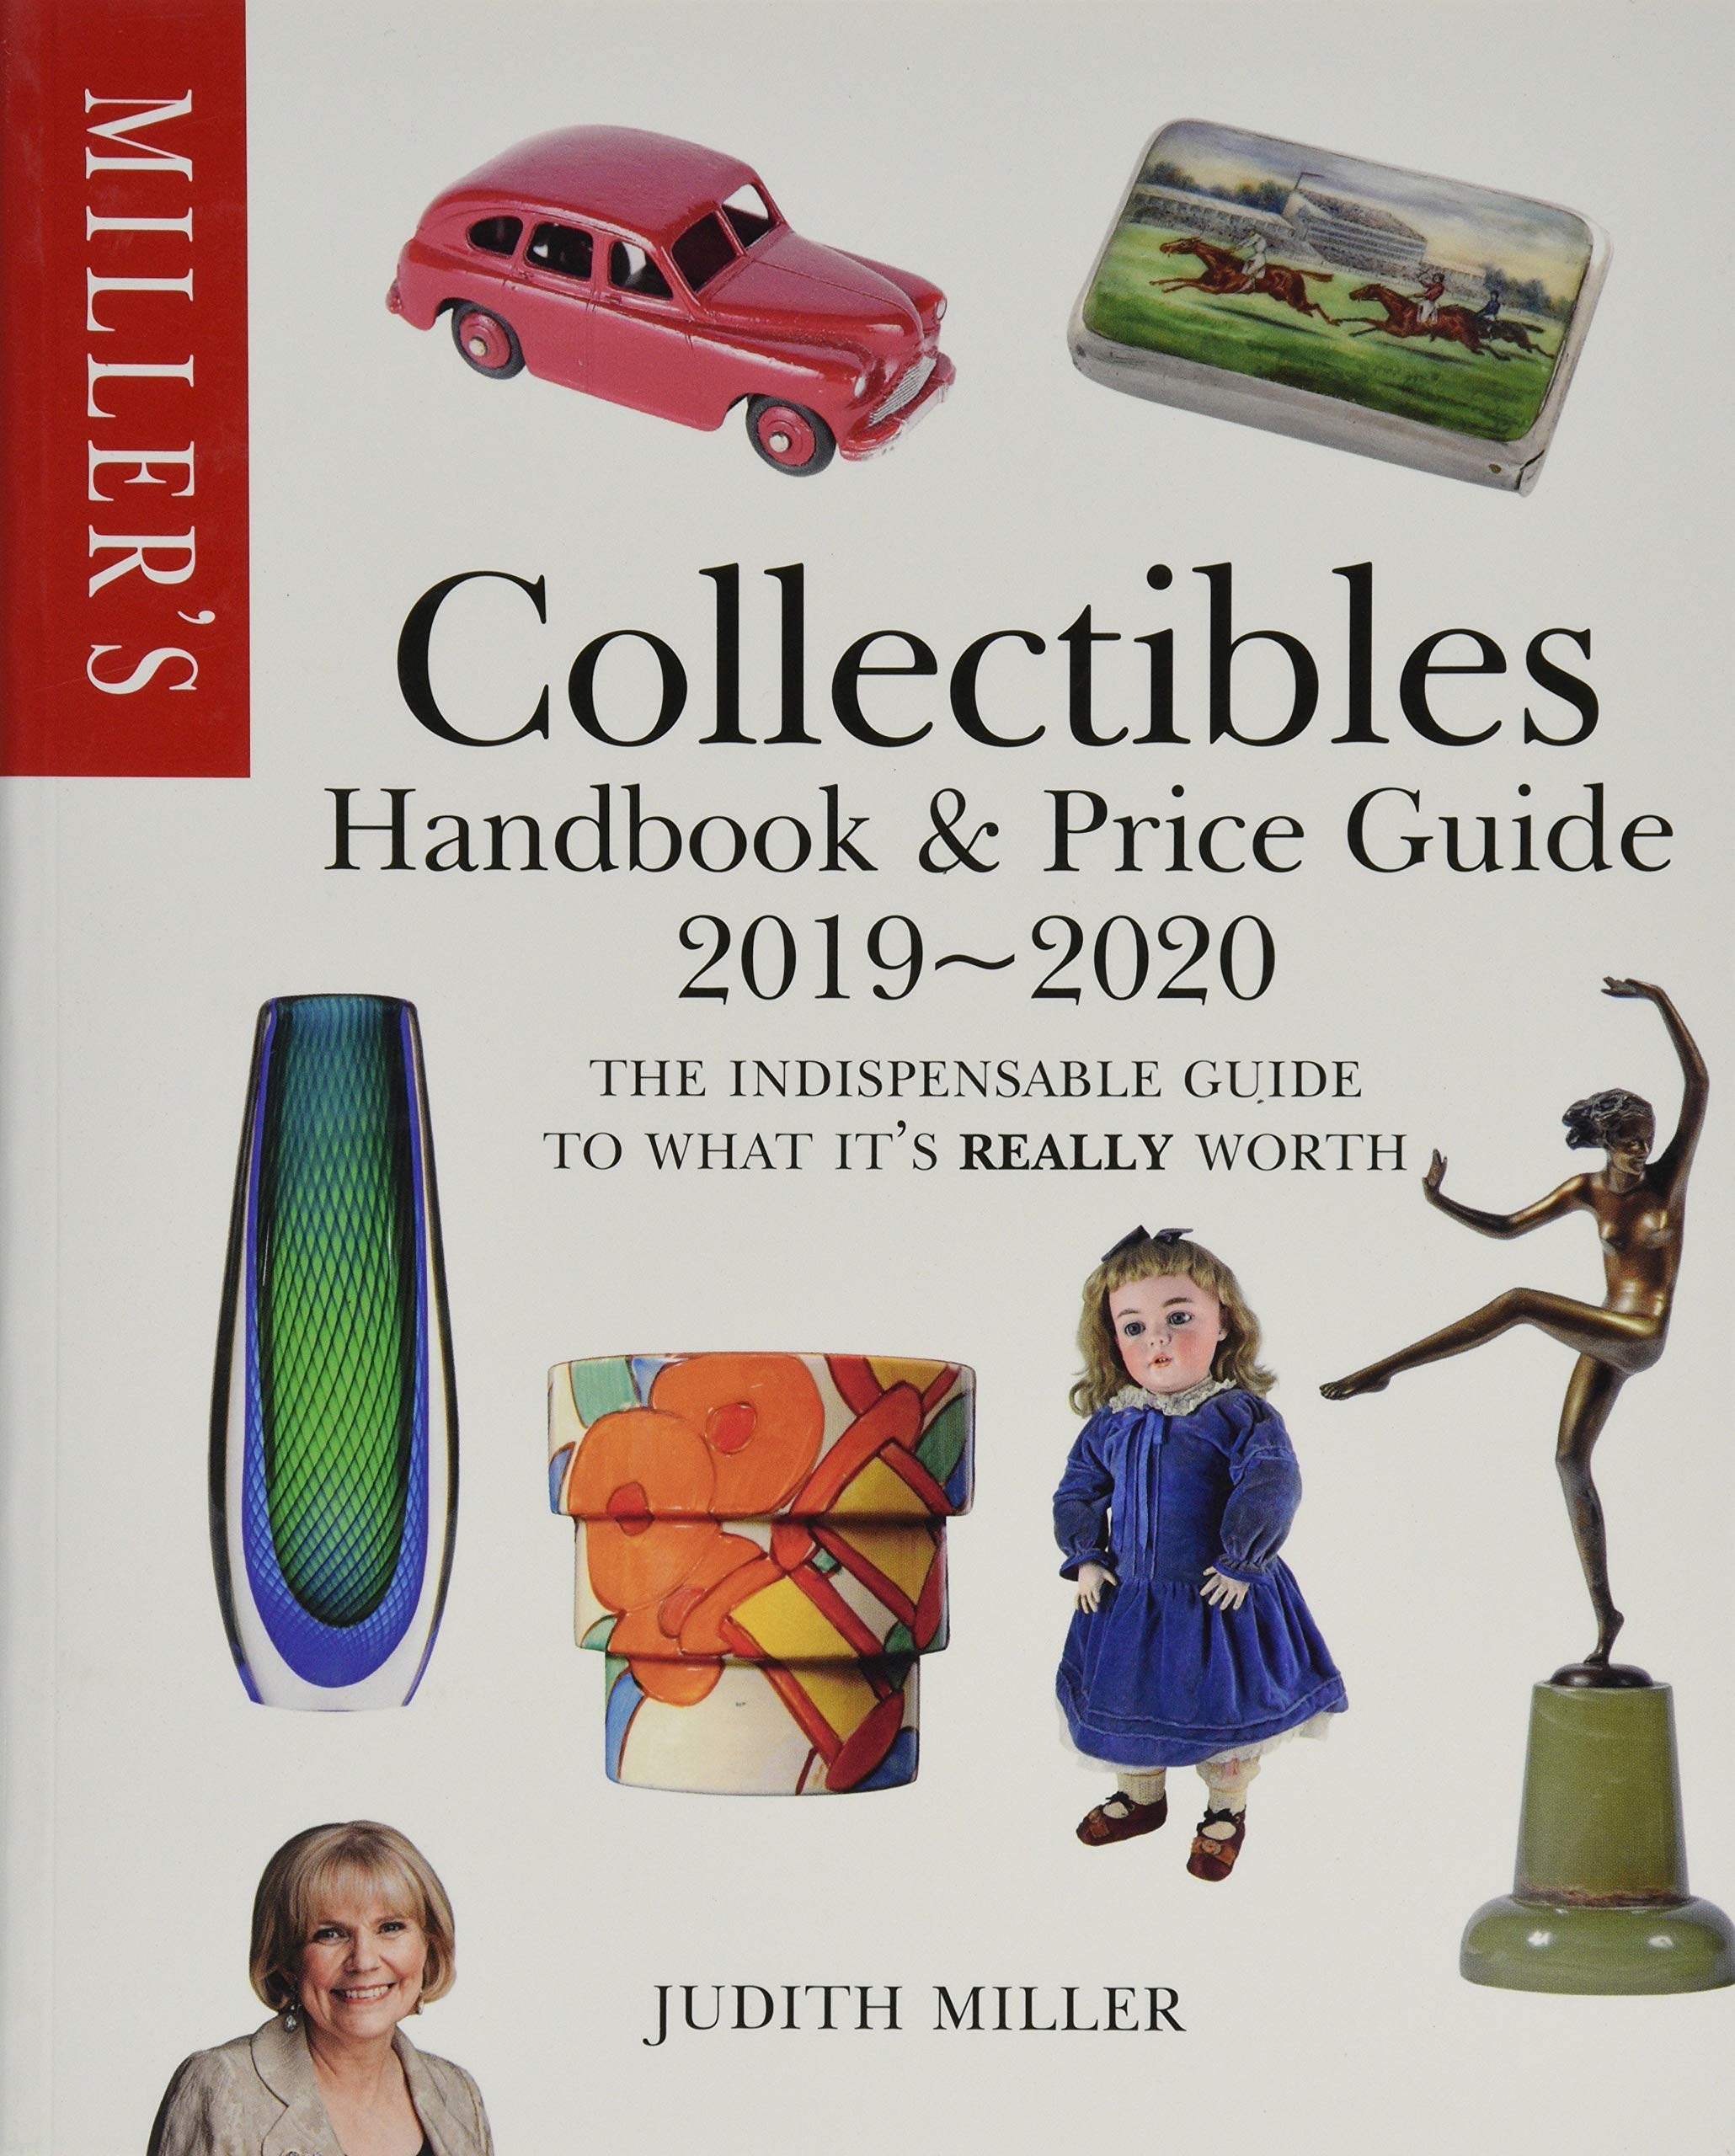 Best Free Registry Cleaner 2020 Miller's Collectibles Handbook & Price Guide 2019/2020 (Miller's